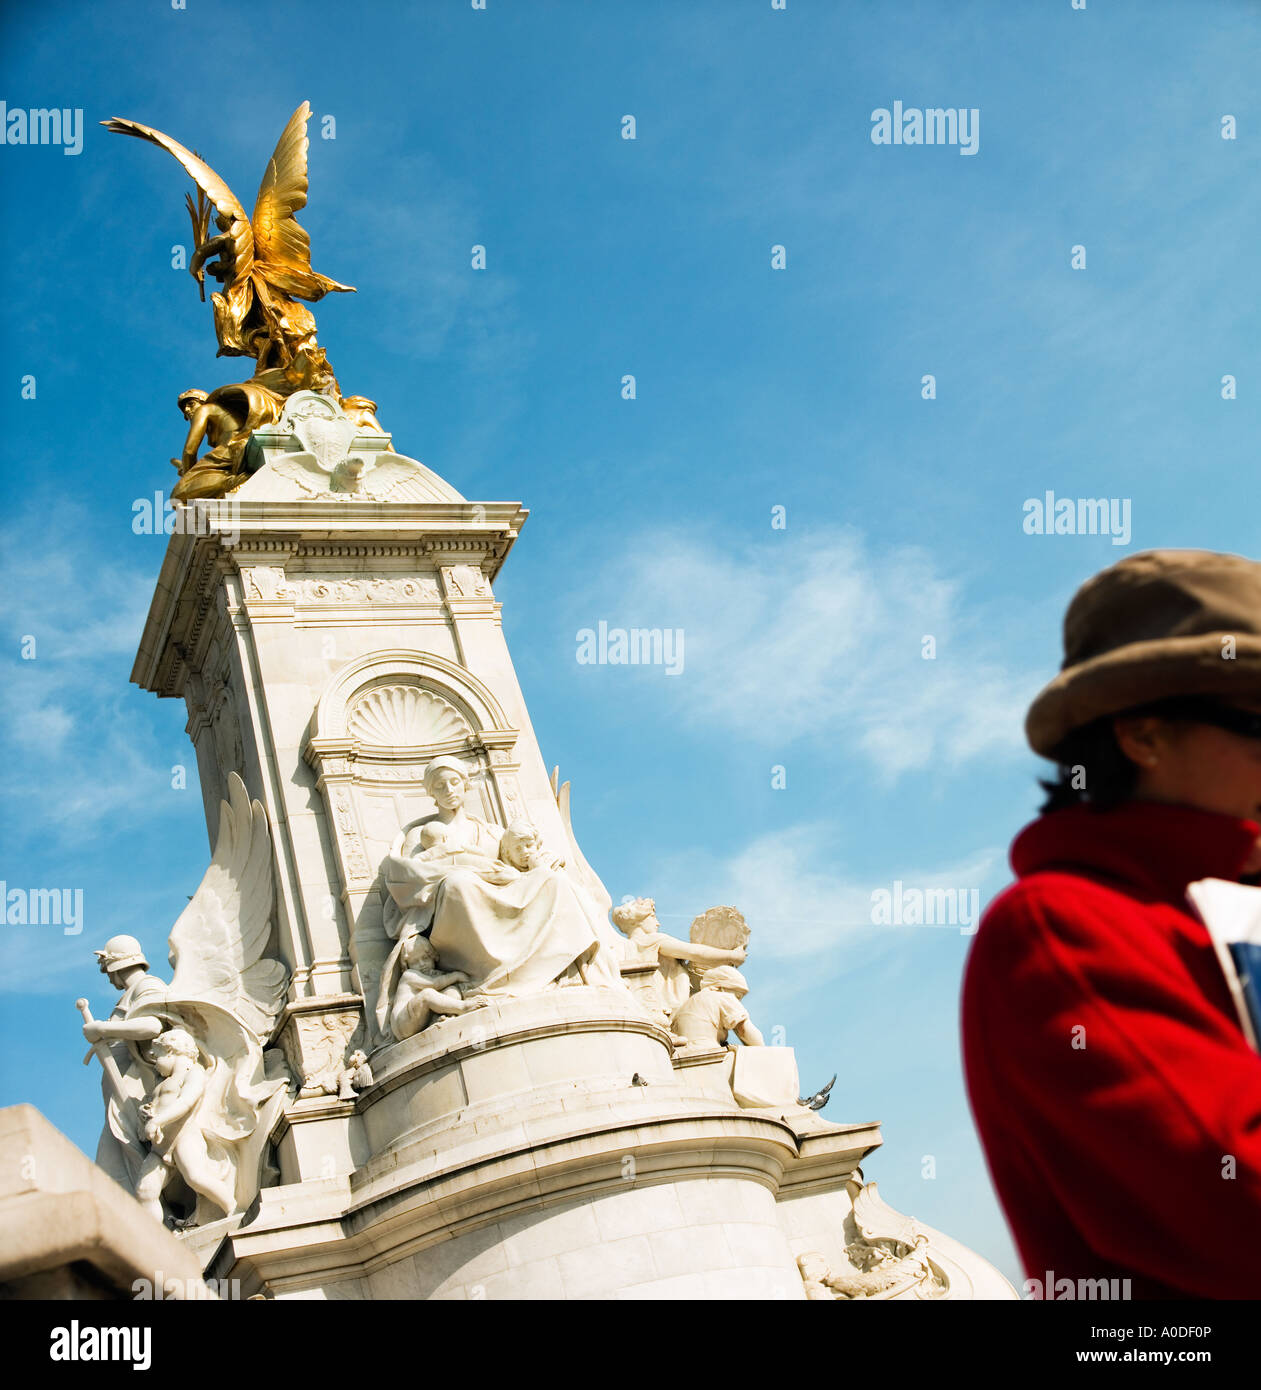 Queen Victoria monument central London England - Stock Image